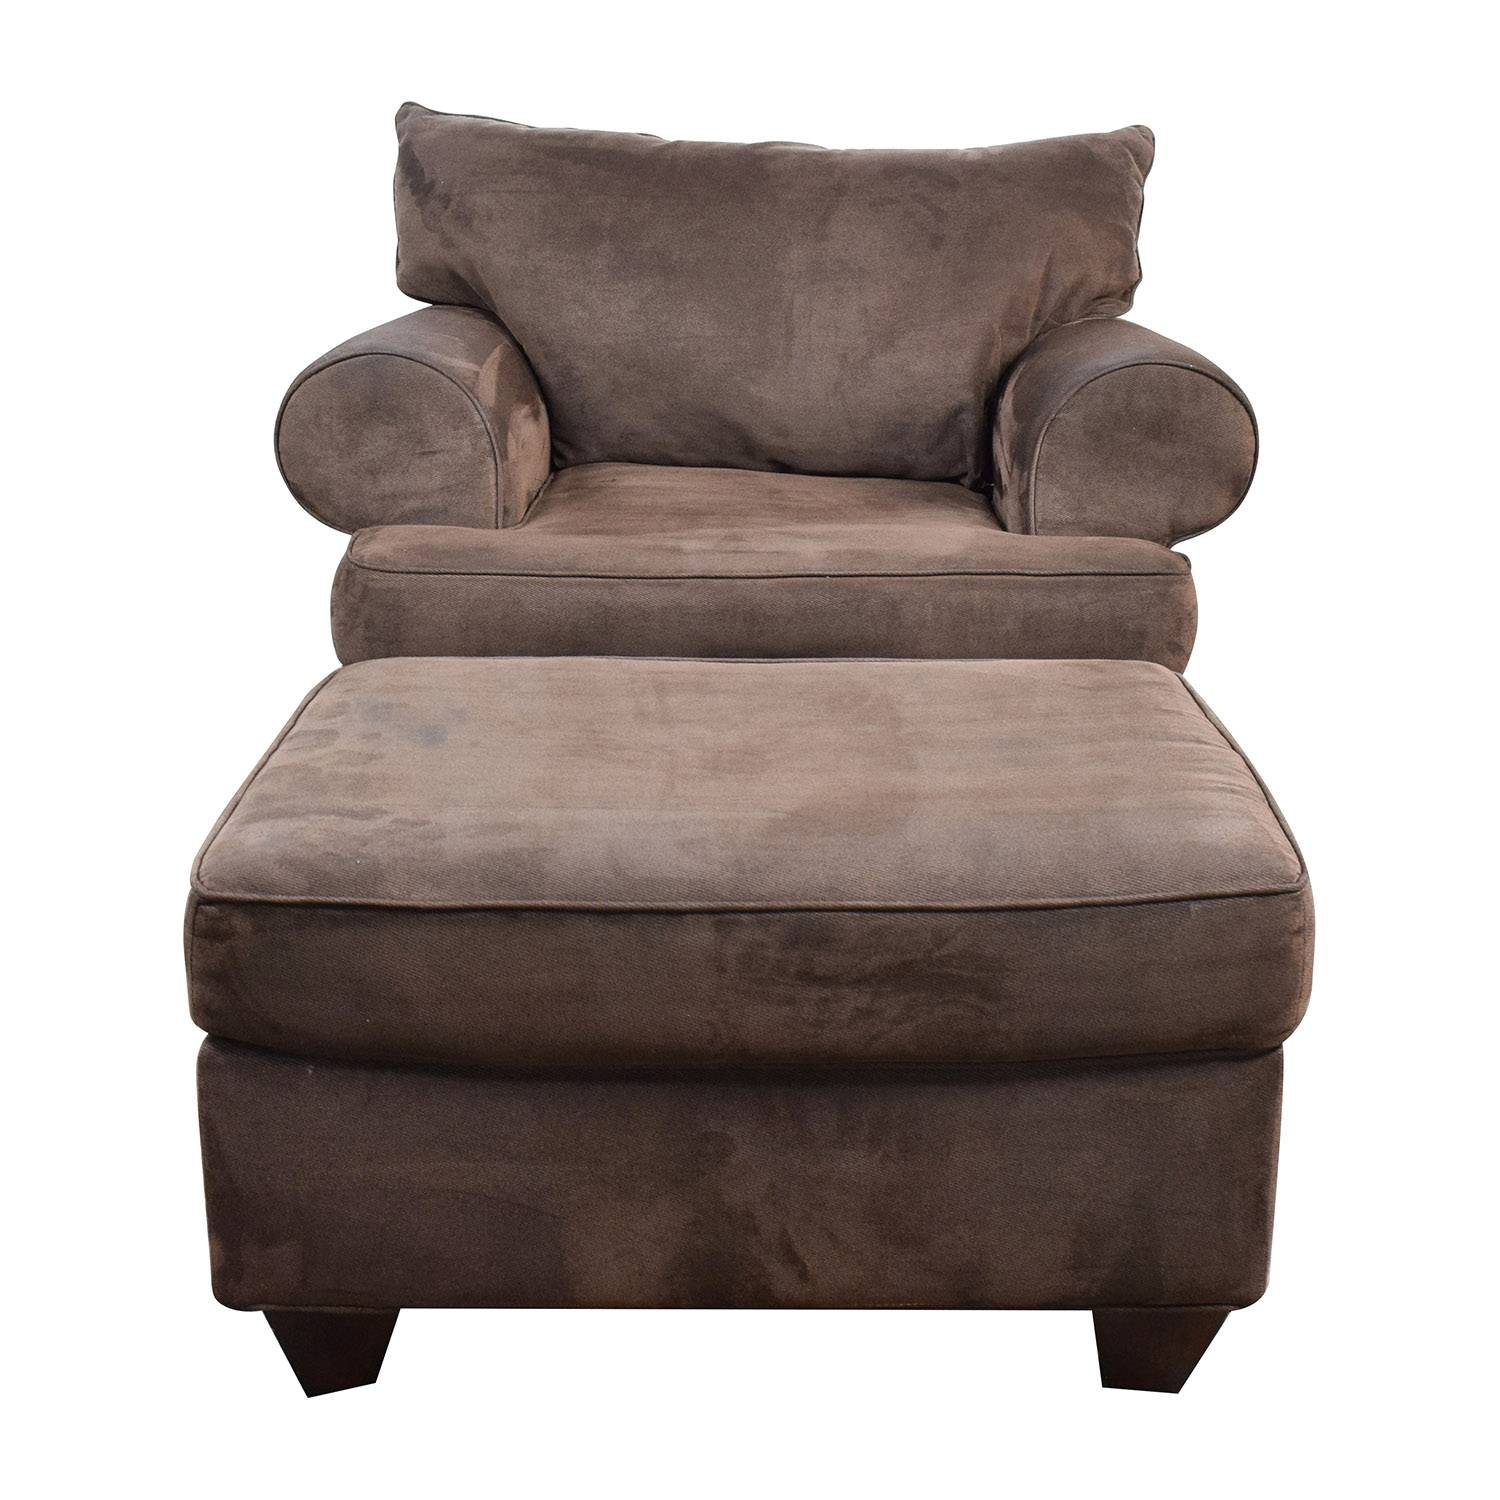 67% Off   Dark Brown Sofa Chair With Ottoman / Chairs Regarding Sofa Chair With Ottoman (Photo 1 of 30)